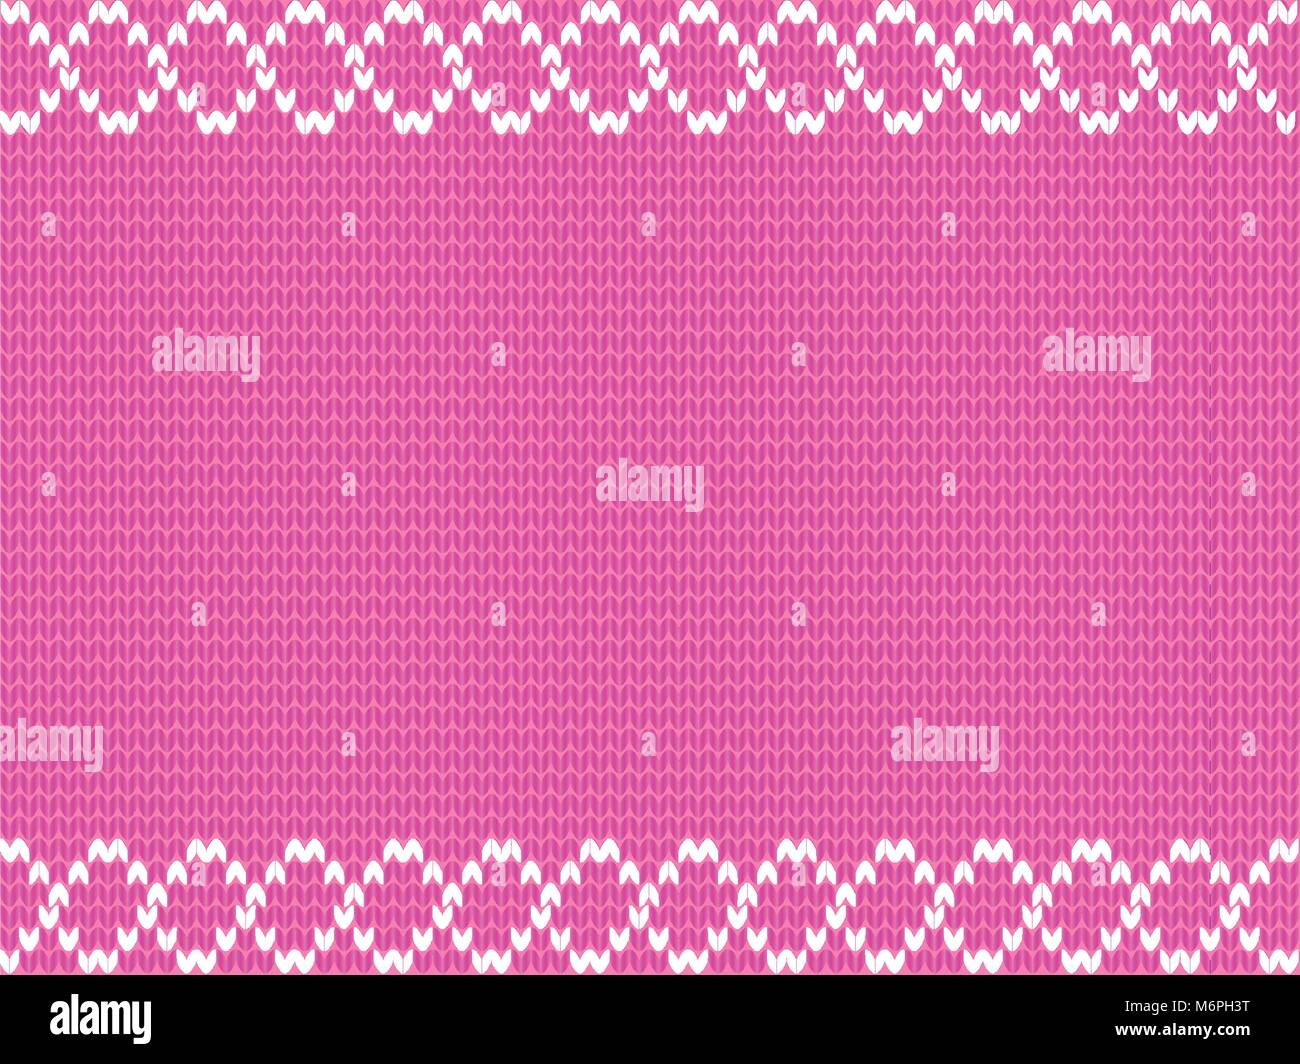 Cute baby pink knitting background framed with white weavy pattern. Vector illustration, border, template with space - Stock Vector